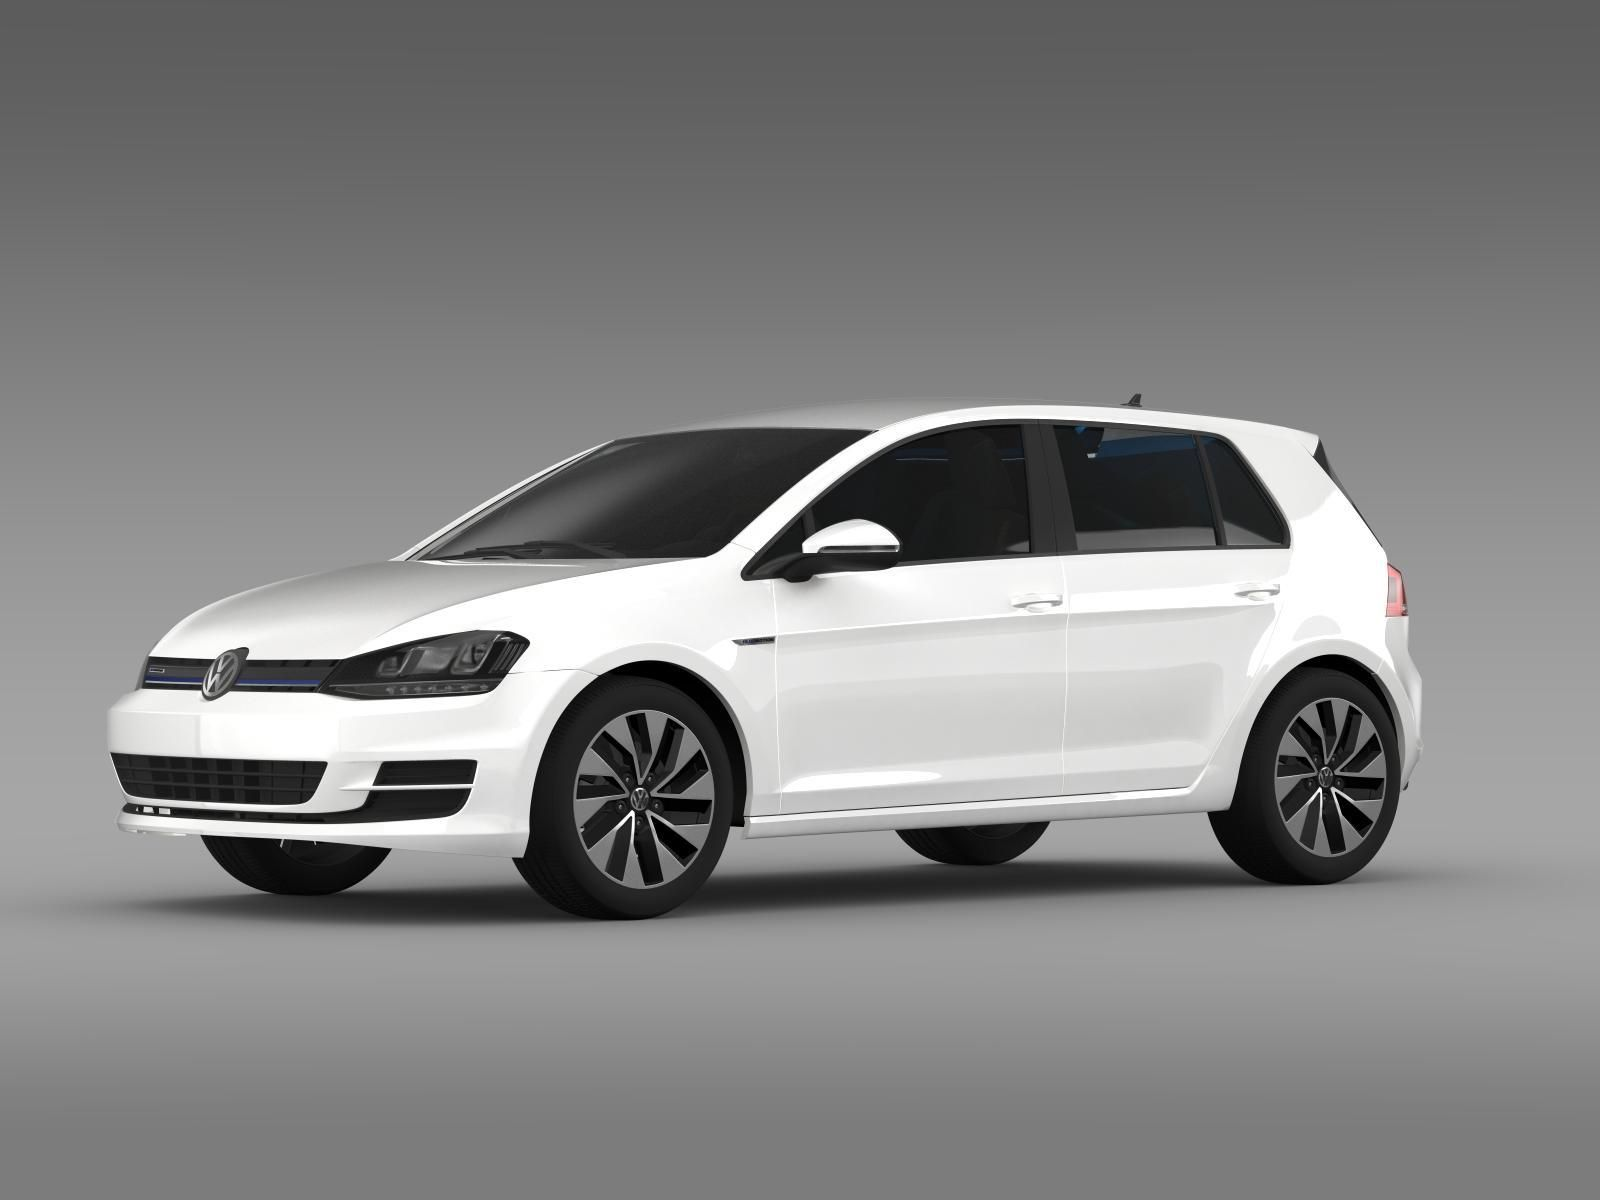 Volkswagen Polo Bluemotion 1 0 Tsi Eurekar Latest Car News